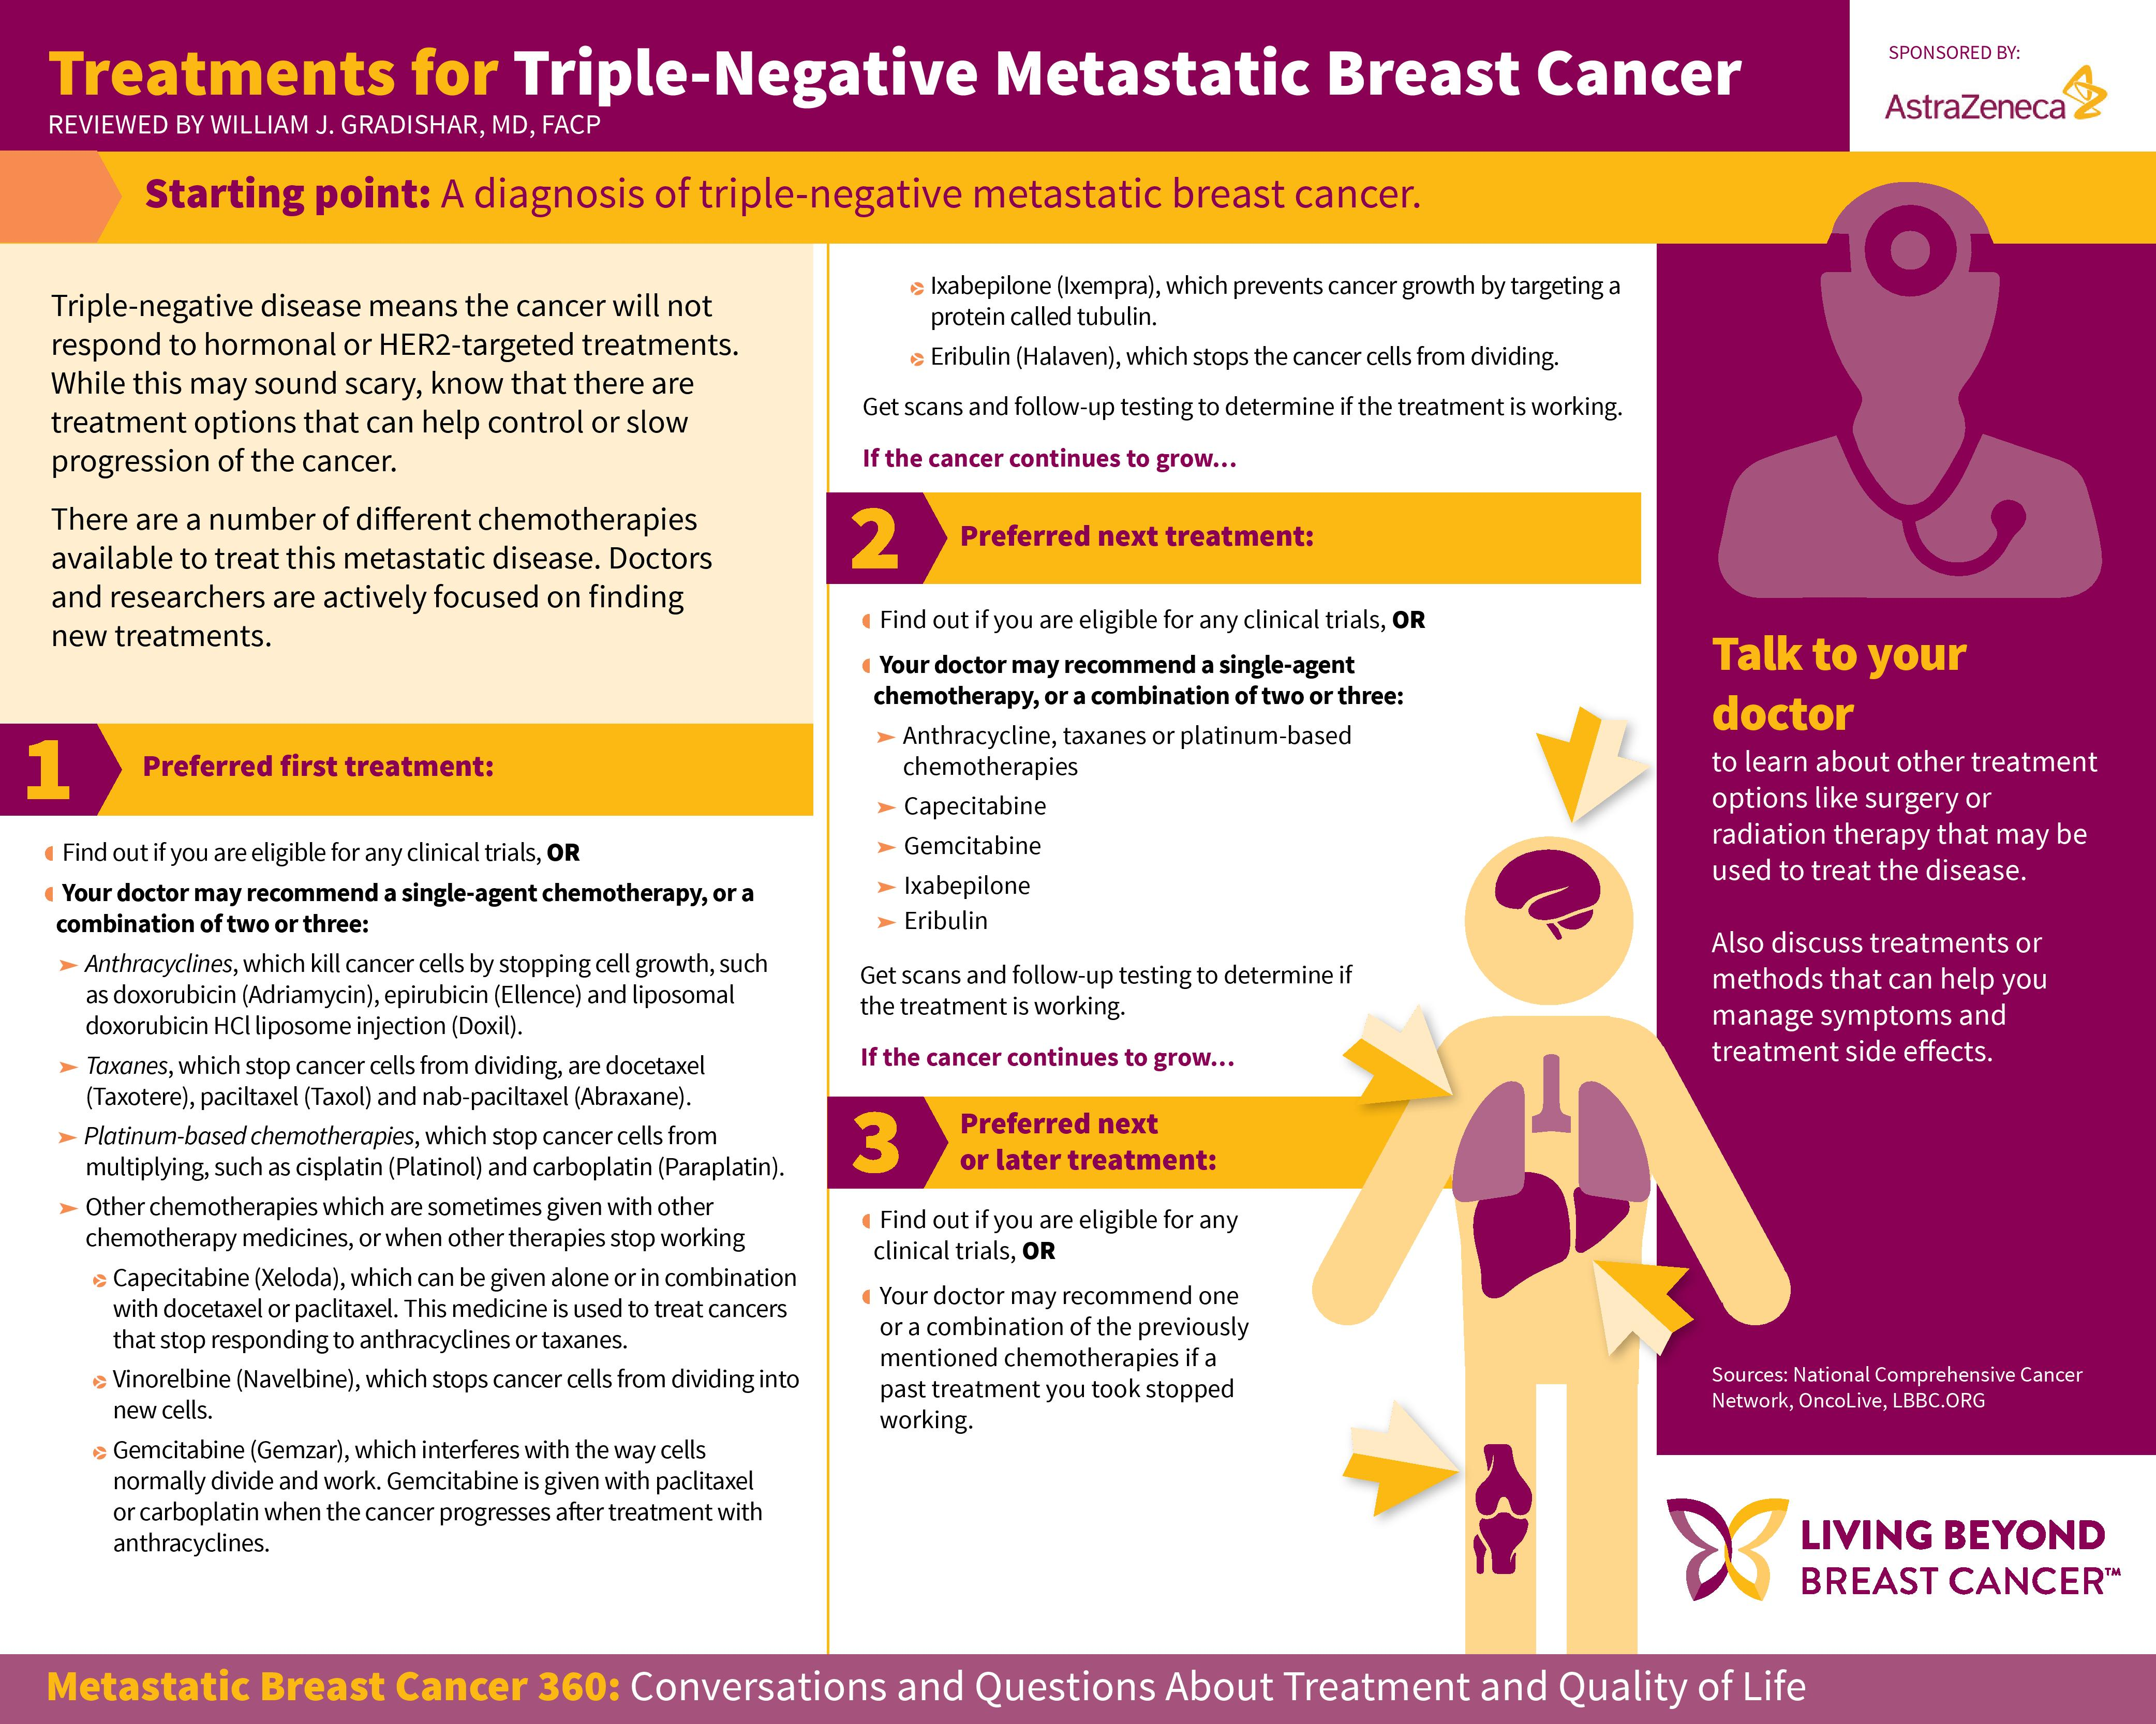 Treatments For Triple Negative Metastatic Breast Cancer Living